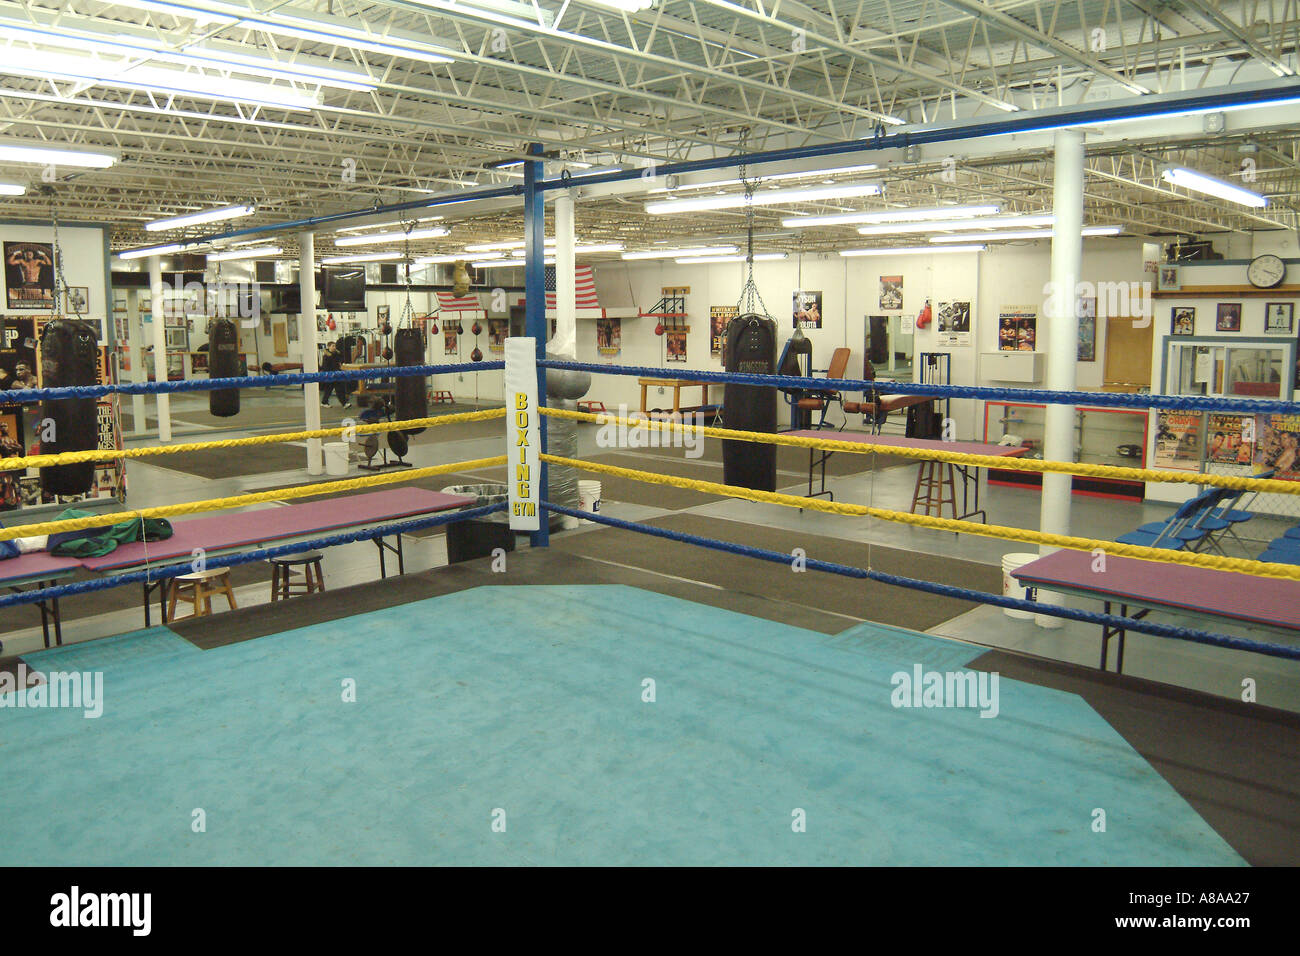 Empty Boxing Ring In Gym - Stock Image